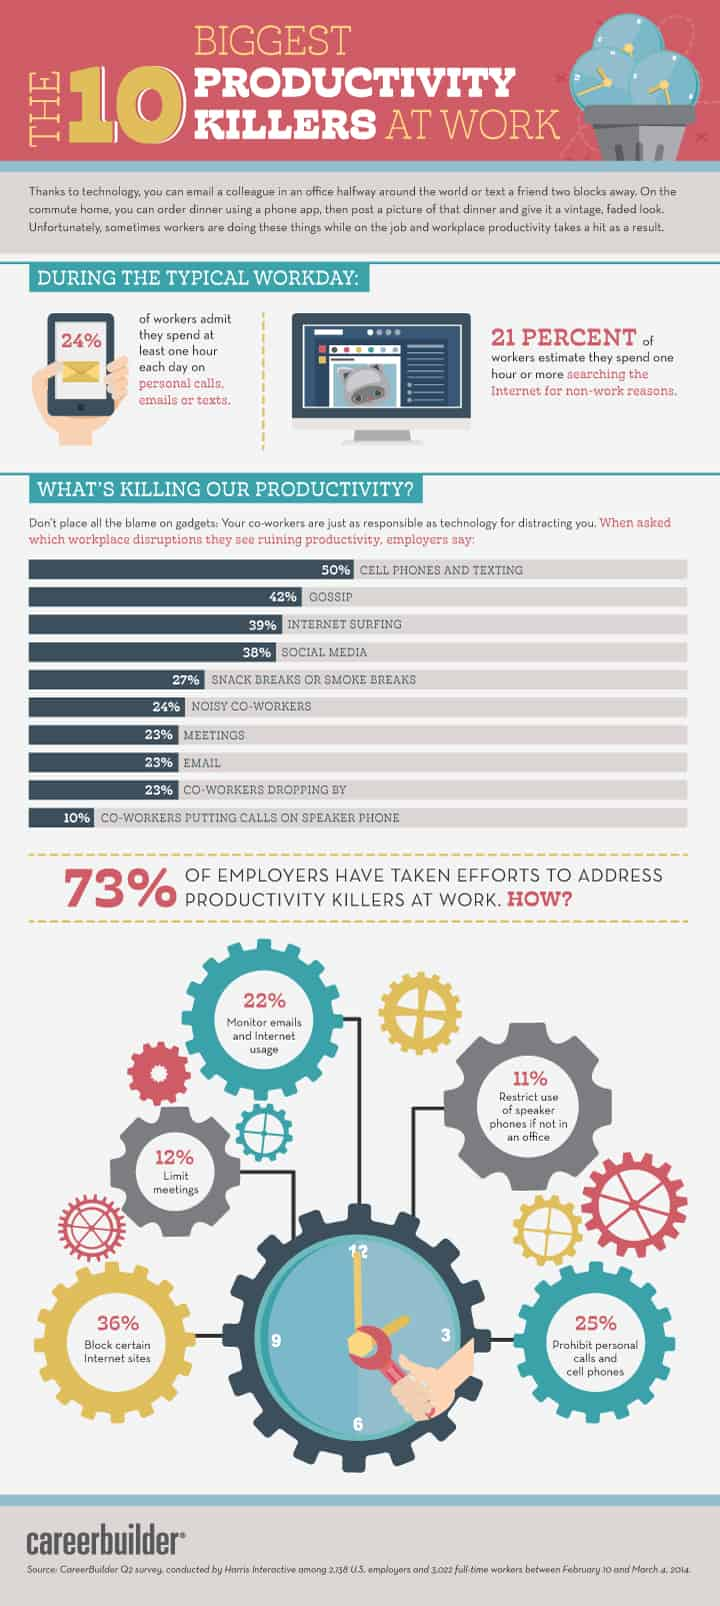 Top Ten Productivity Killers at Work